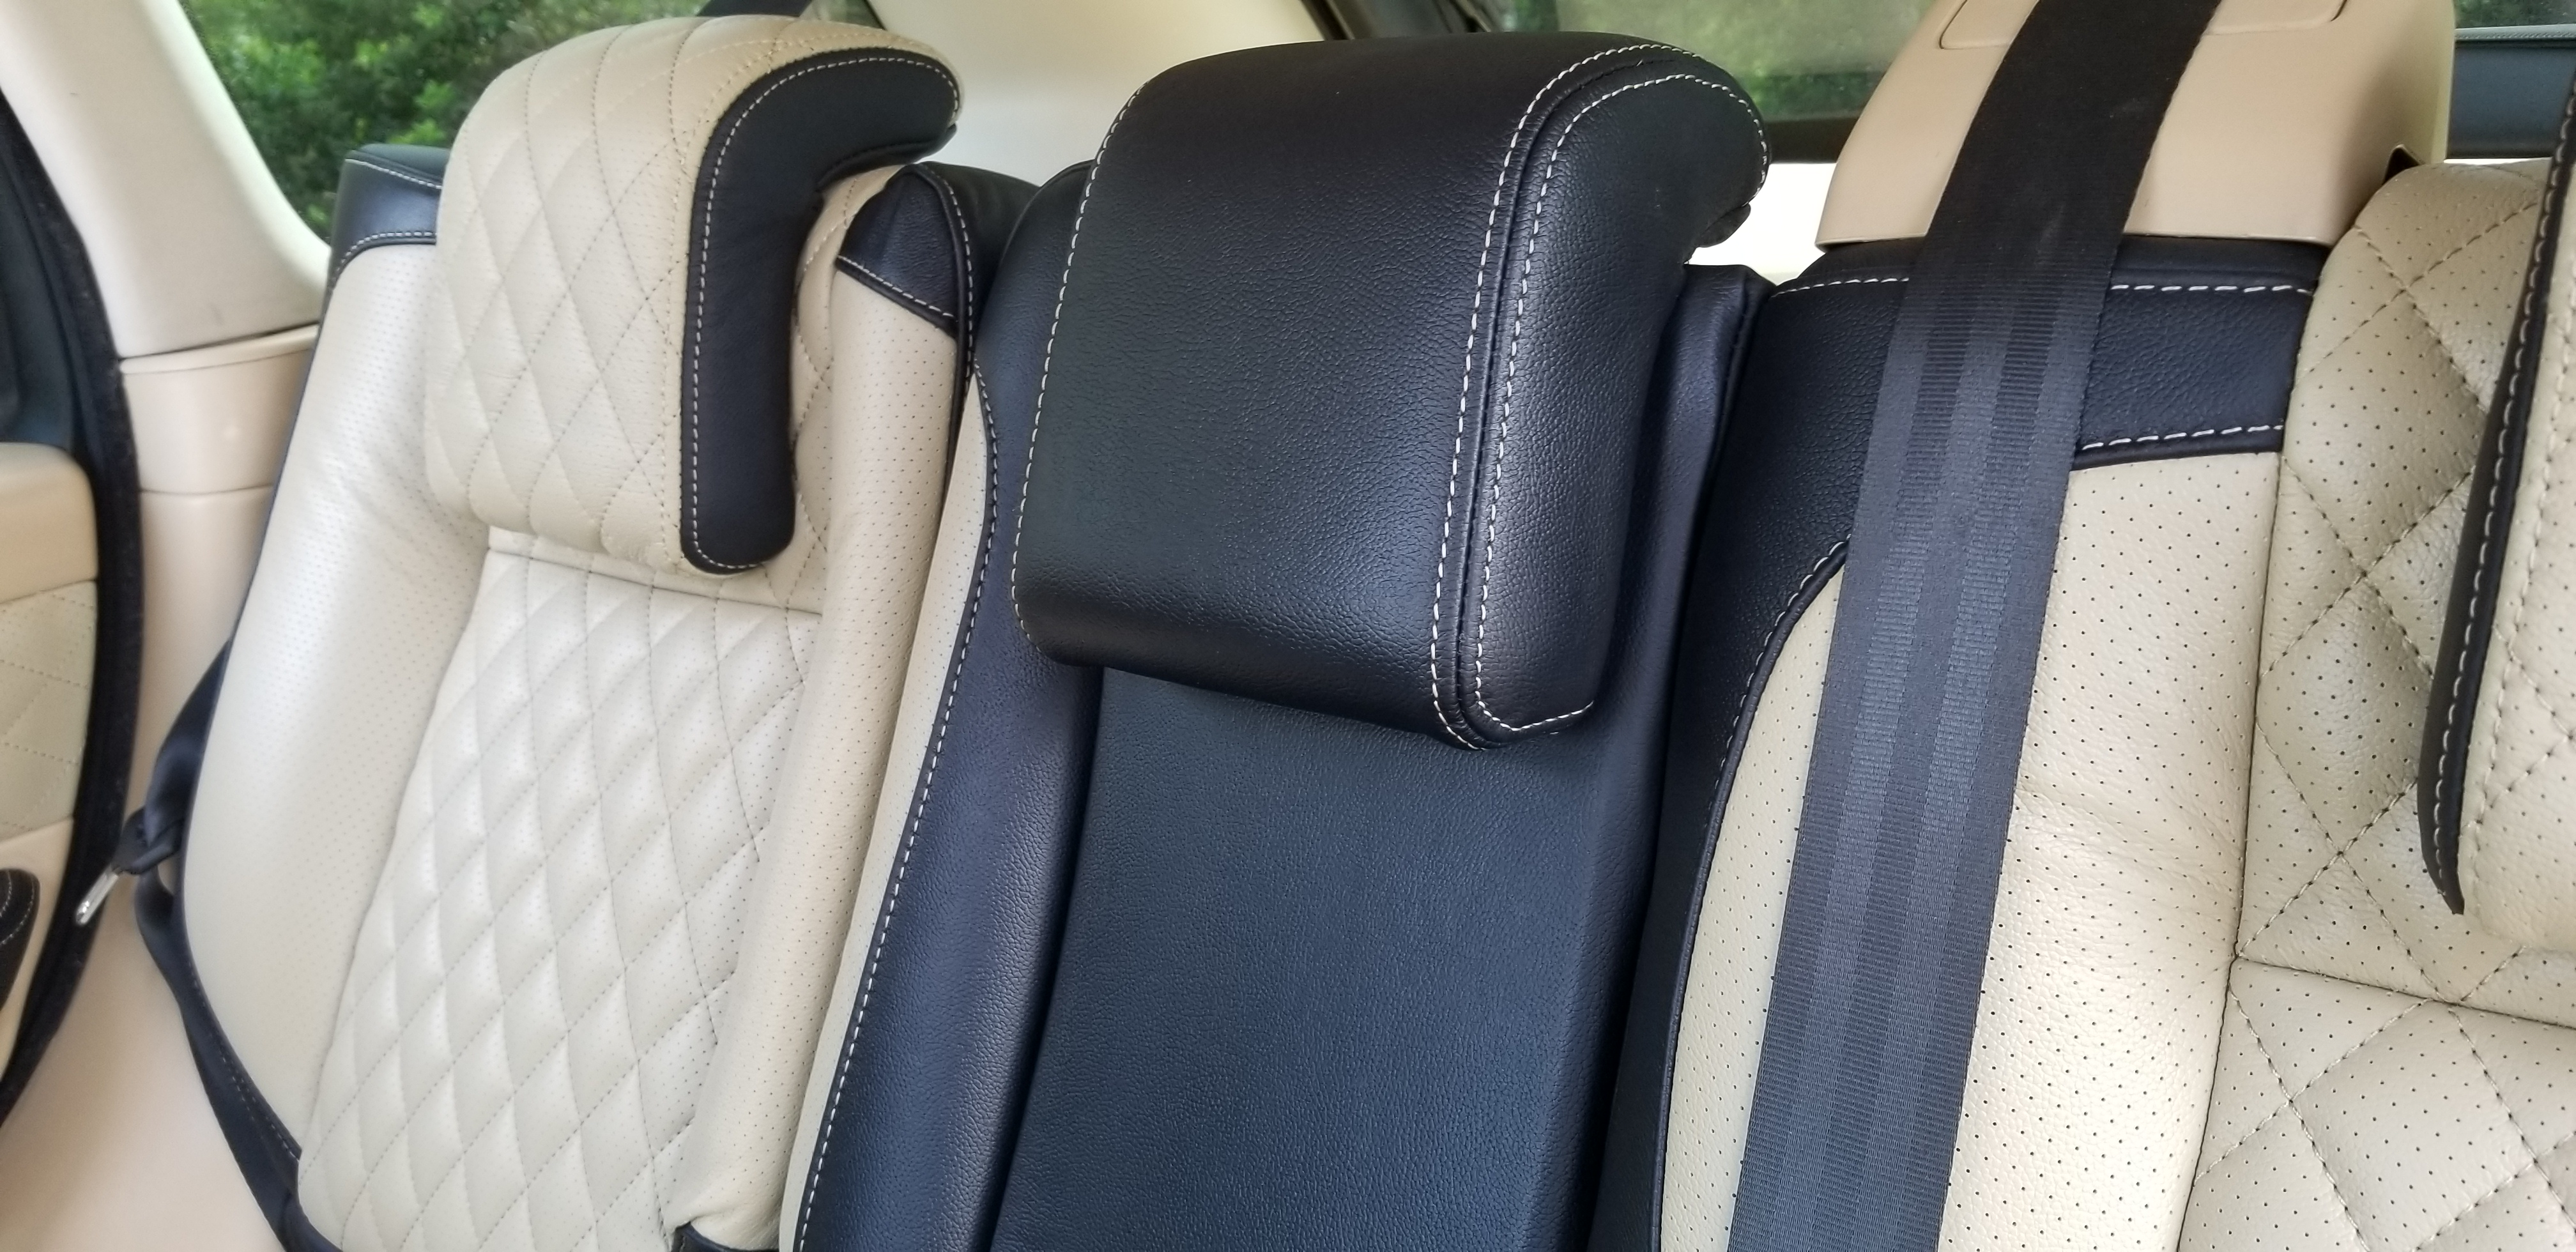 My 2009 Autobiography Conversion with Interior Included!..-rrs-autobiography-conversion-full-pics-videos_33930085378_o.jpg